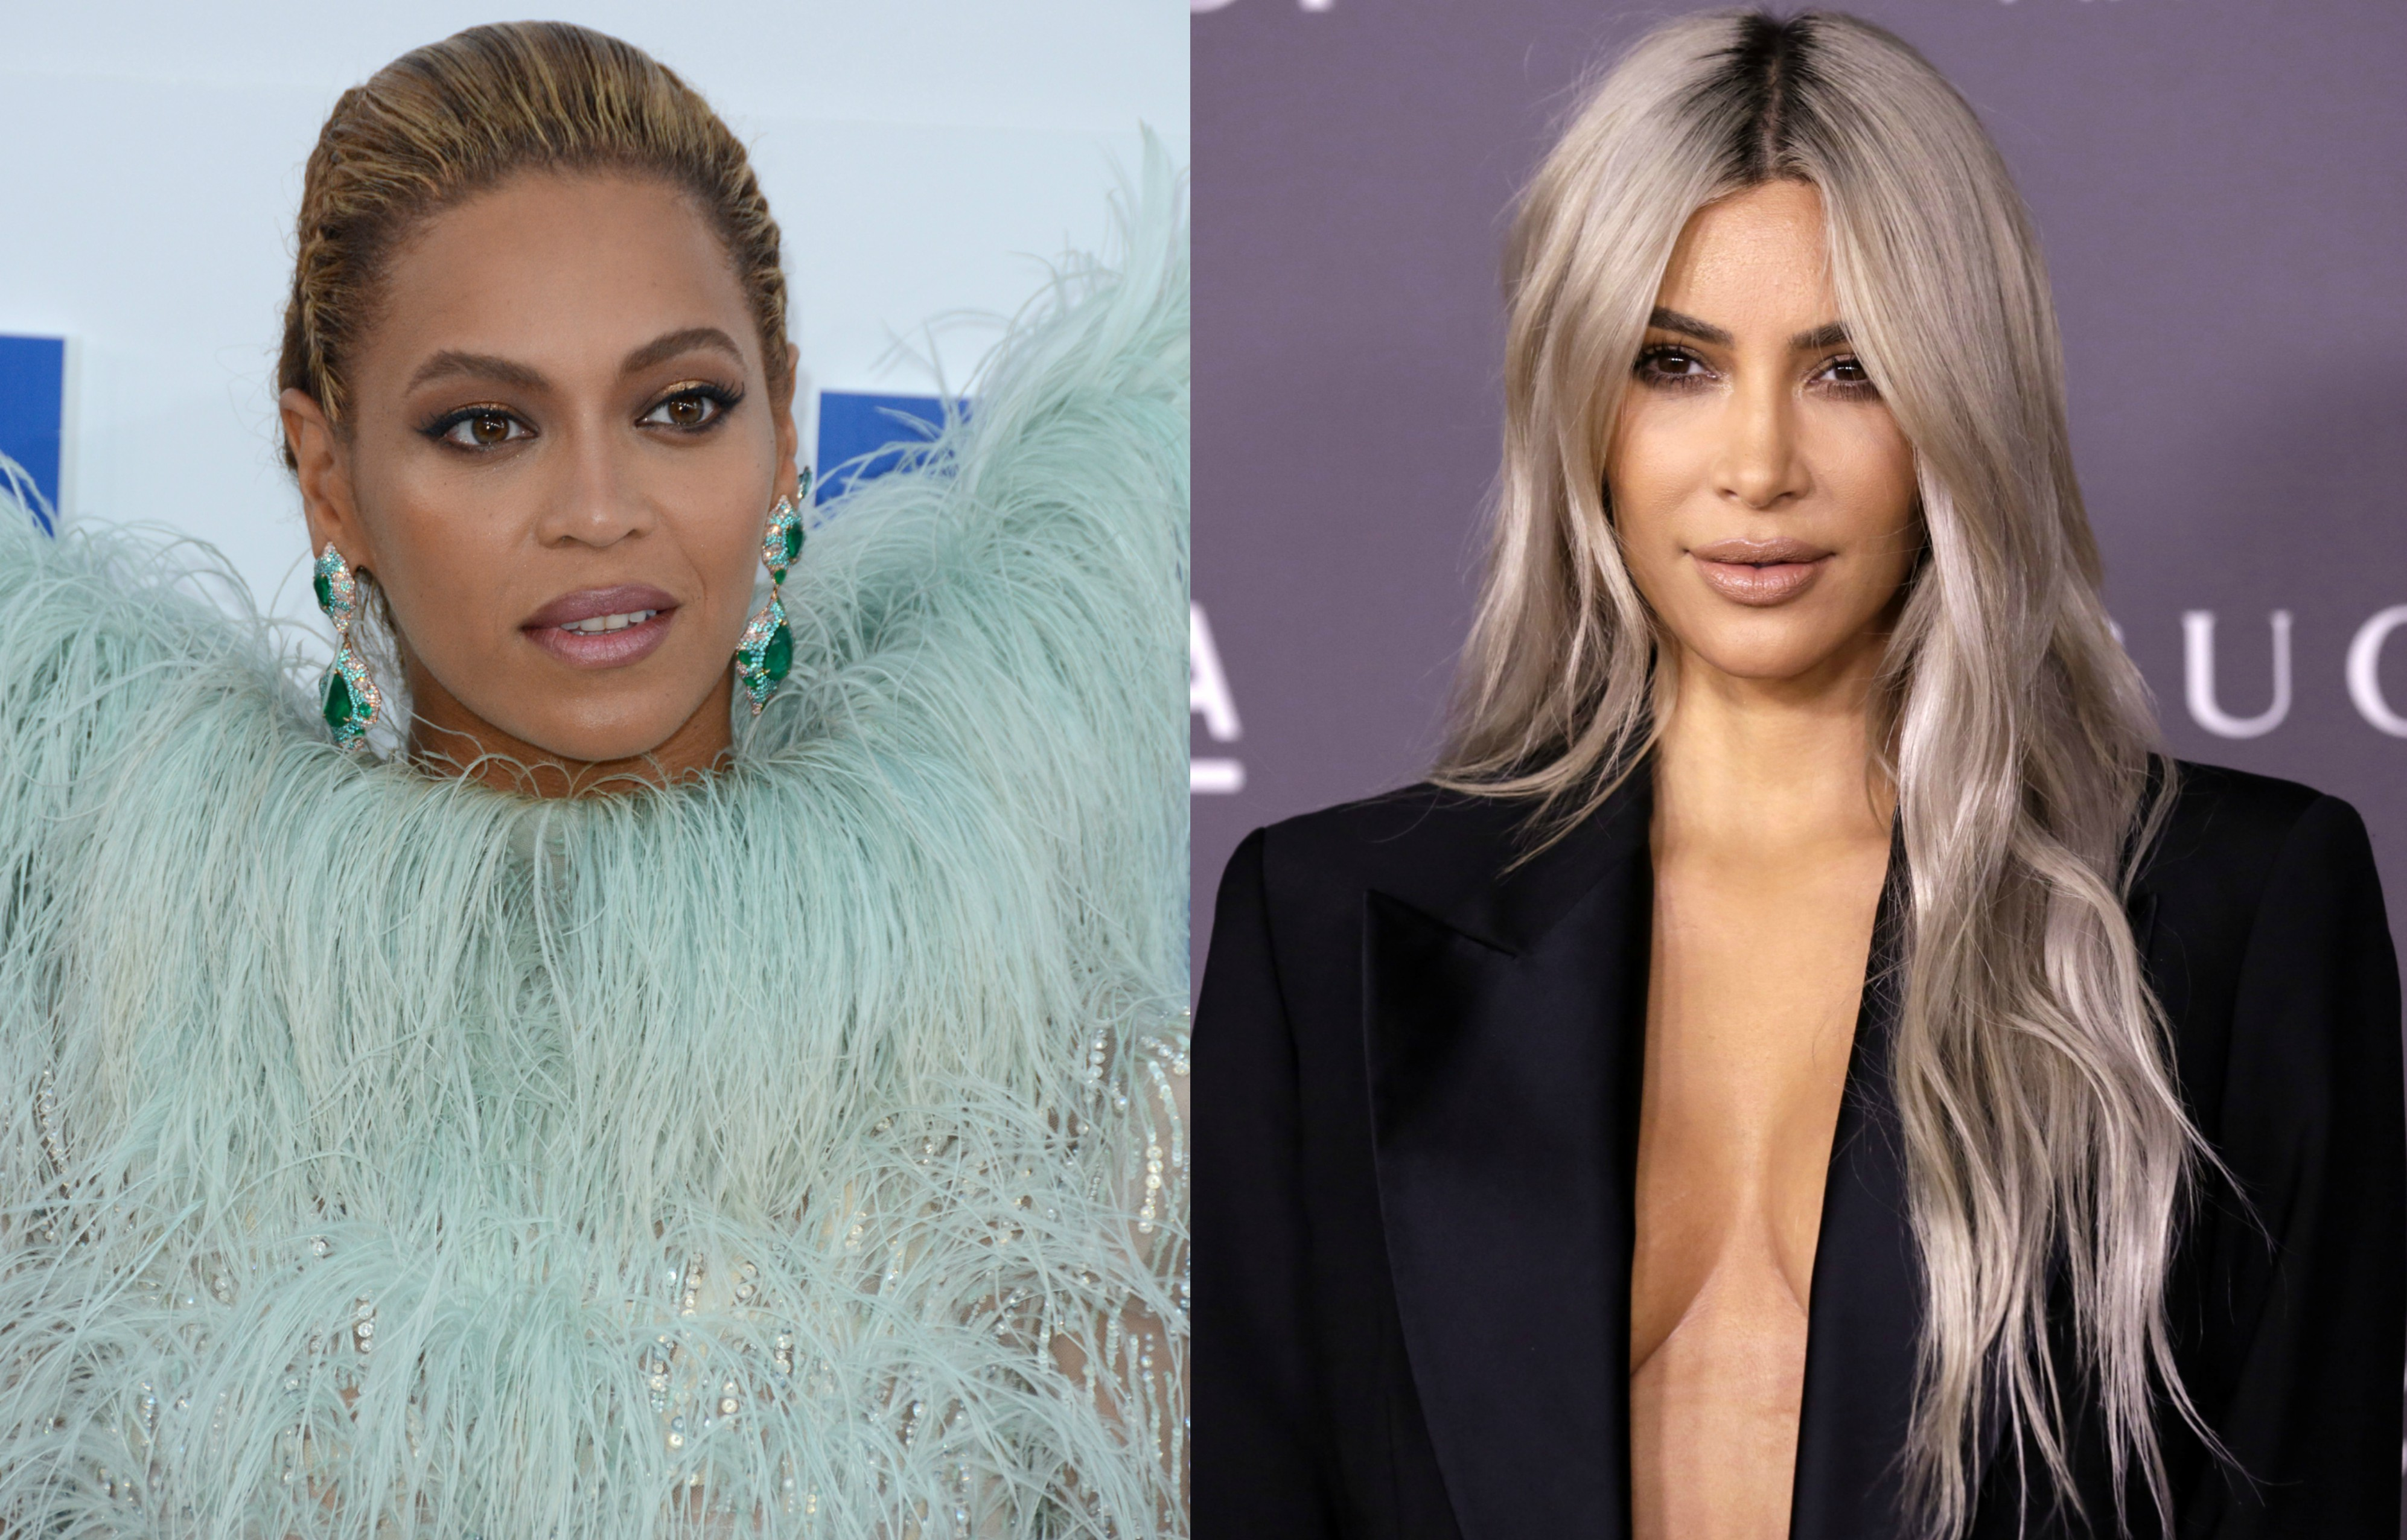 Beyoncé and Kim Kardashian are not fond of each other and simply try to get along because their husbands are so close. But since they're not anymore (keep clicking through), there's no need to keep pretending! Right? (Photo: WENN)